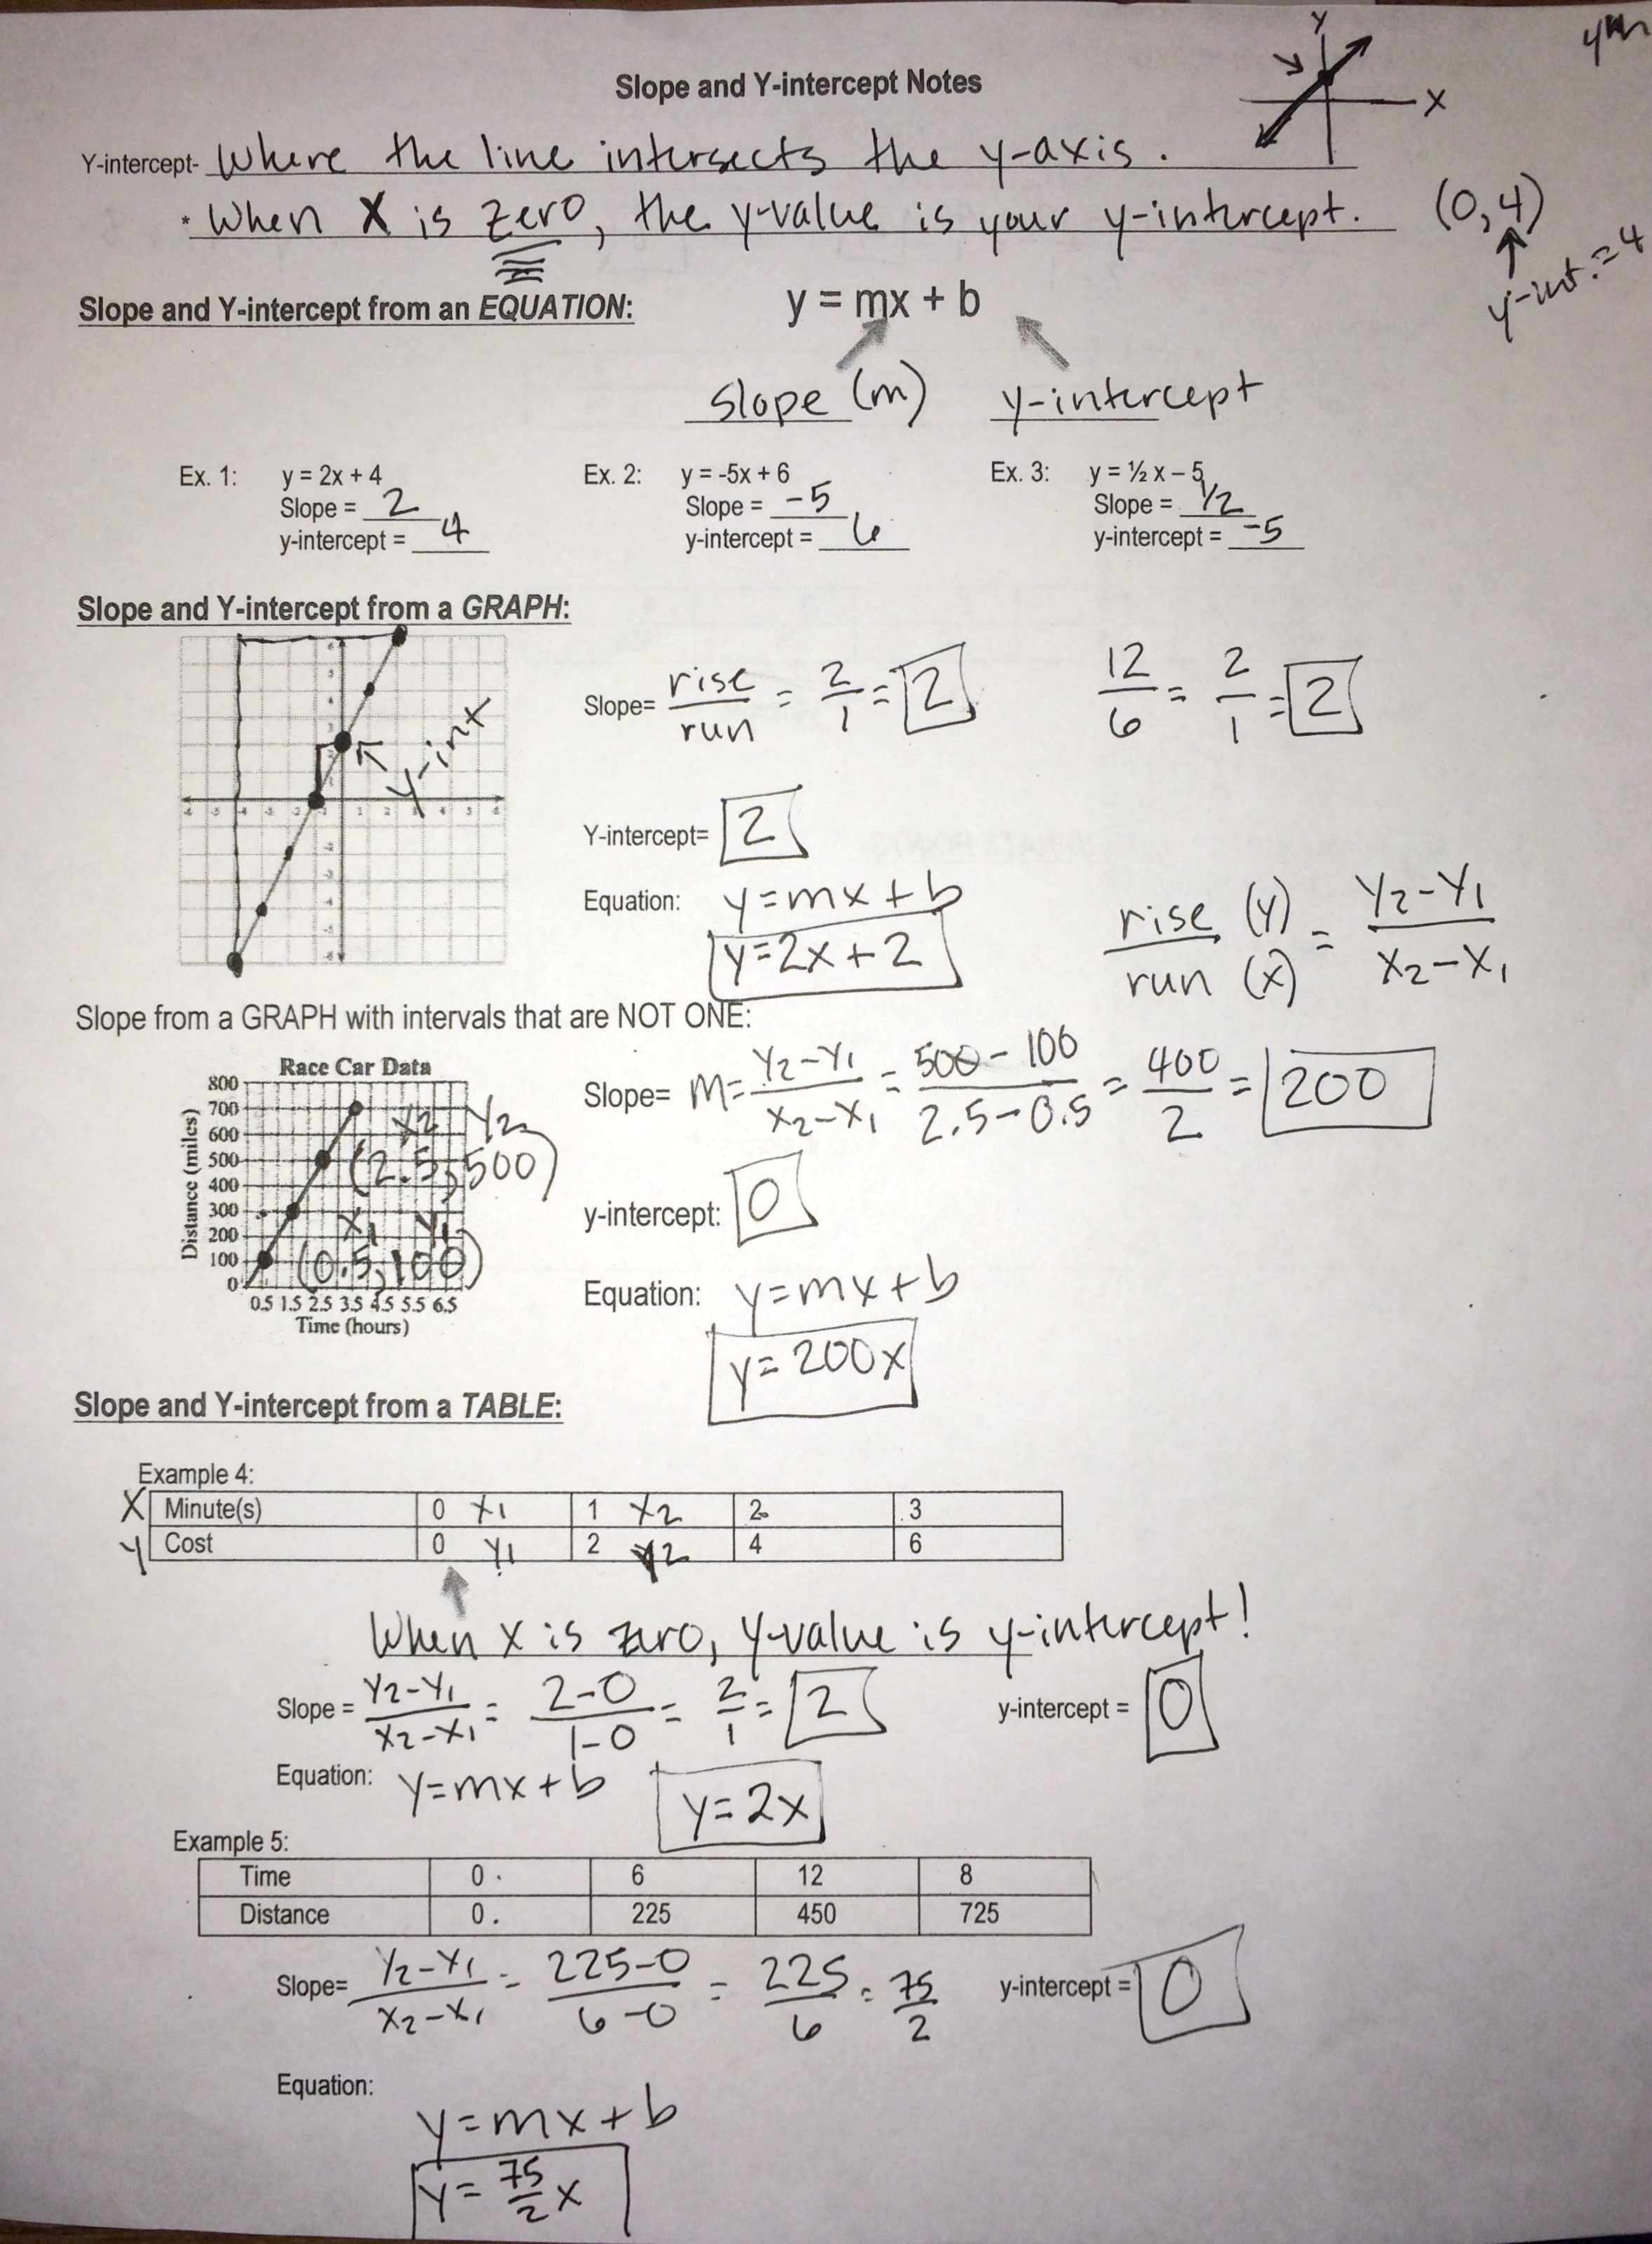 proportional and nonproportional relationships worksheet answers breadandhearth. Black Bedroom Furniture Sets. Home Design Ideas